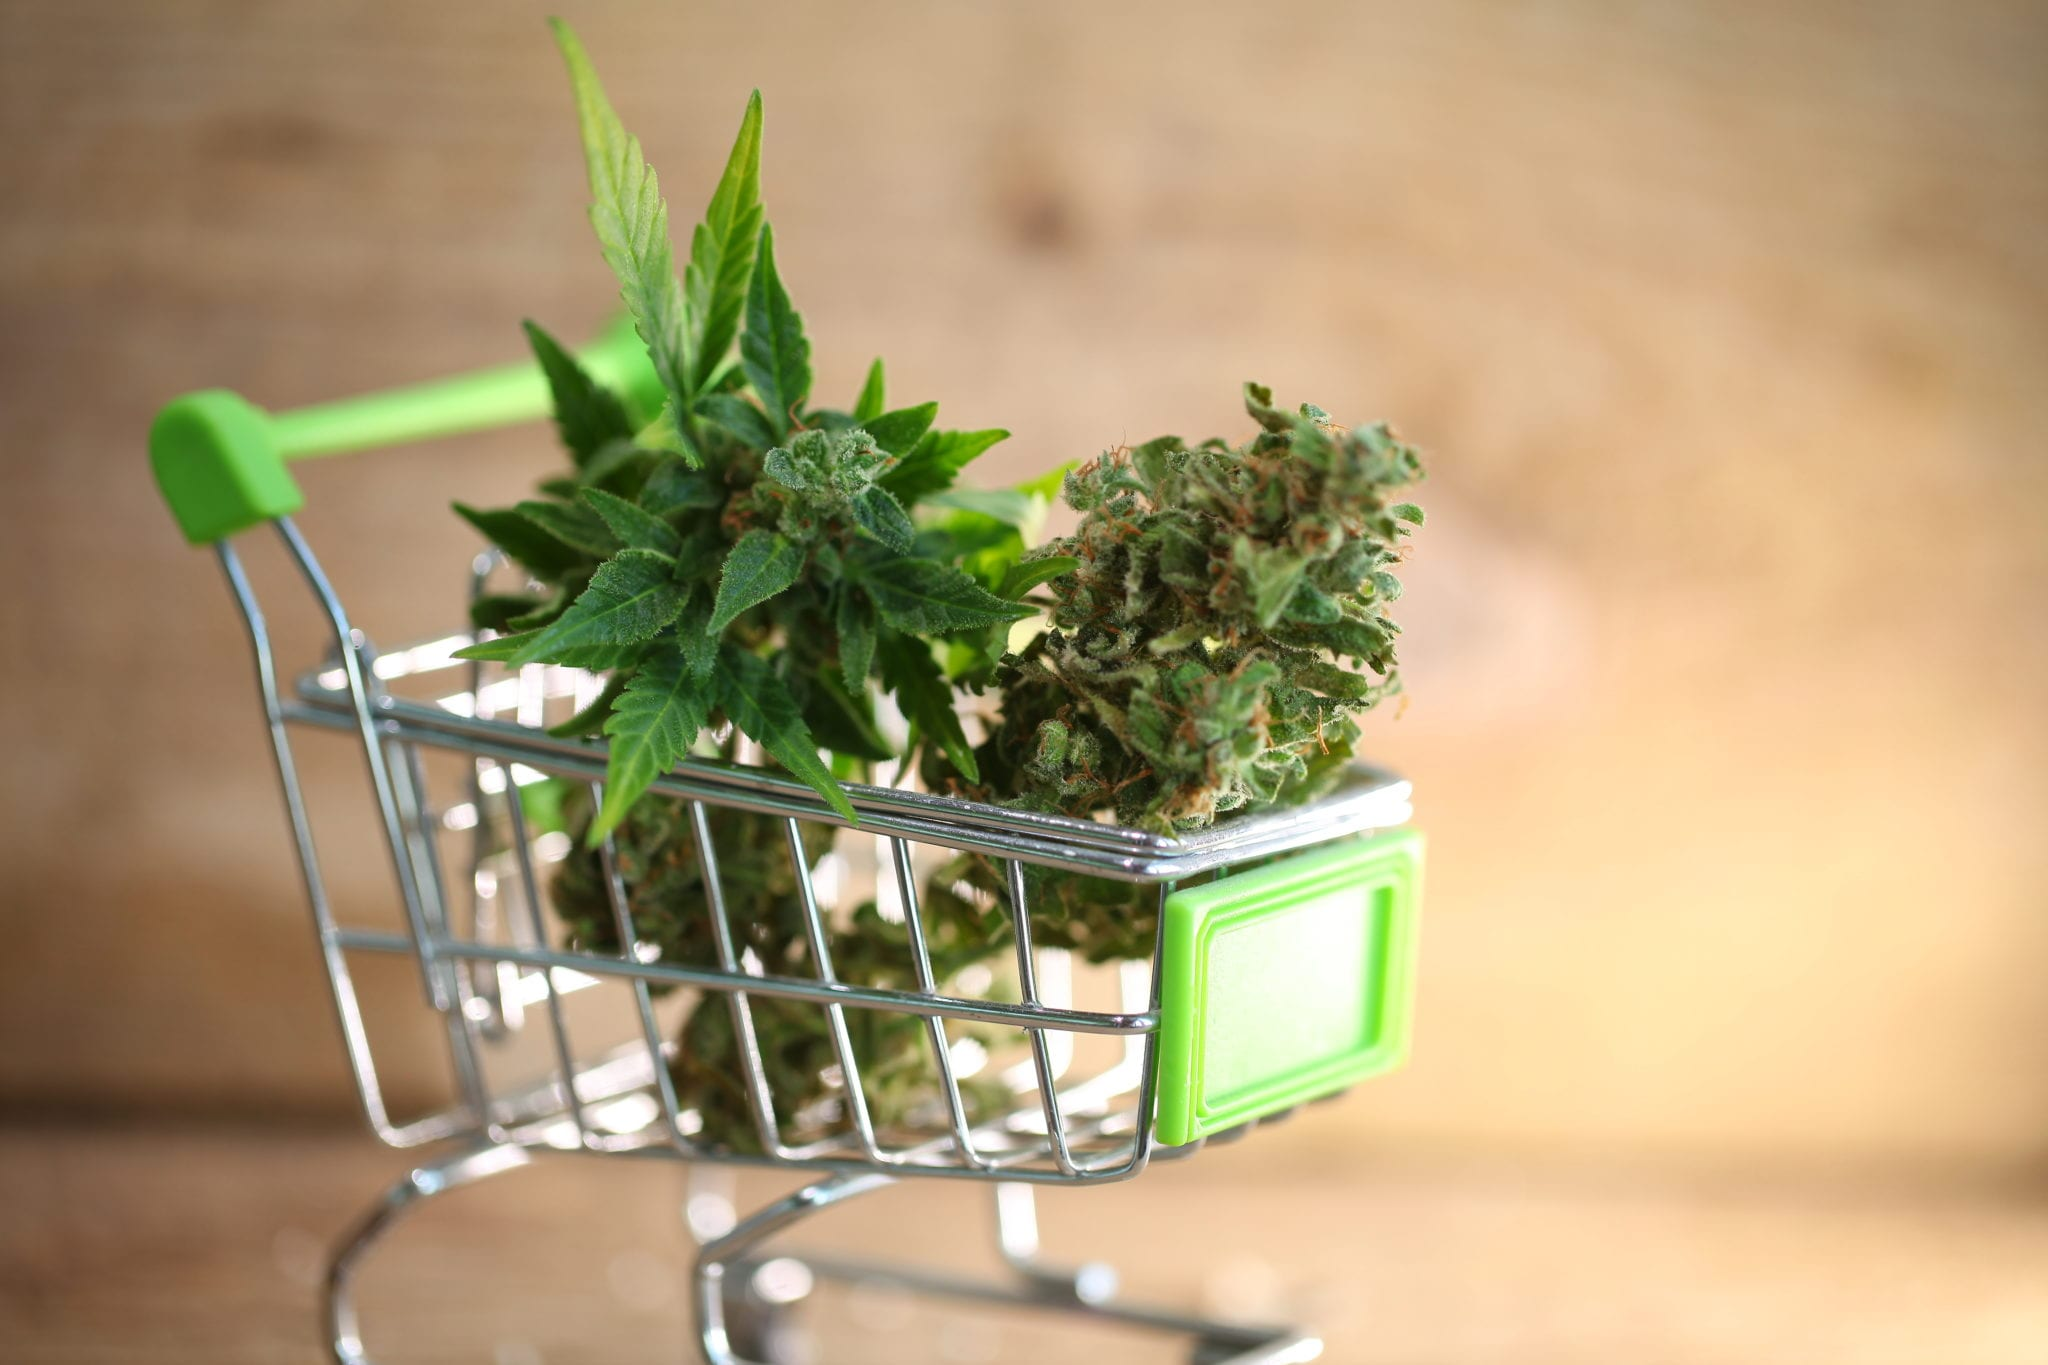 Cannabis Retail Sales Exceed $100M For First Time in July: Statistics Canada